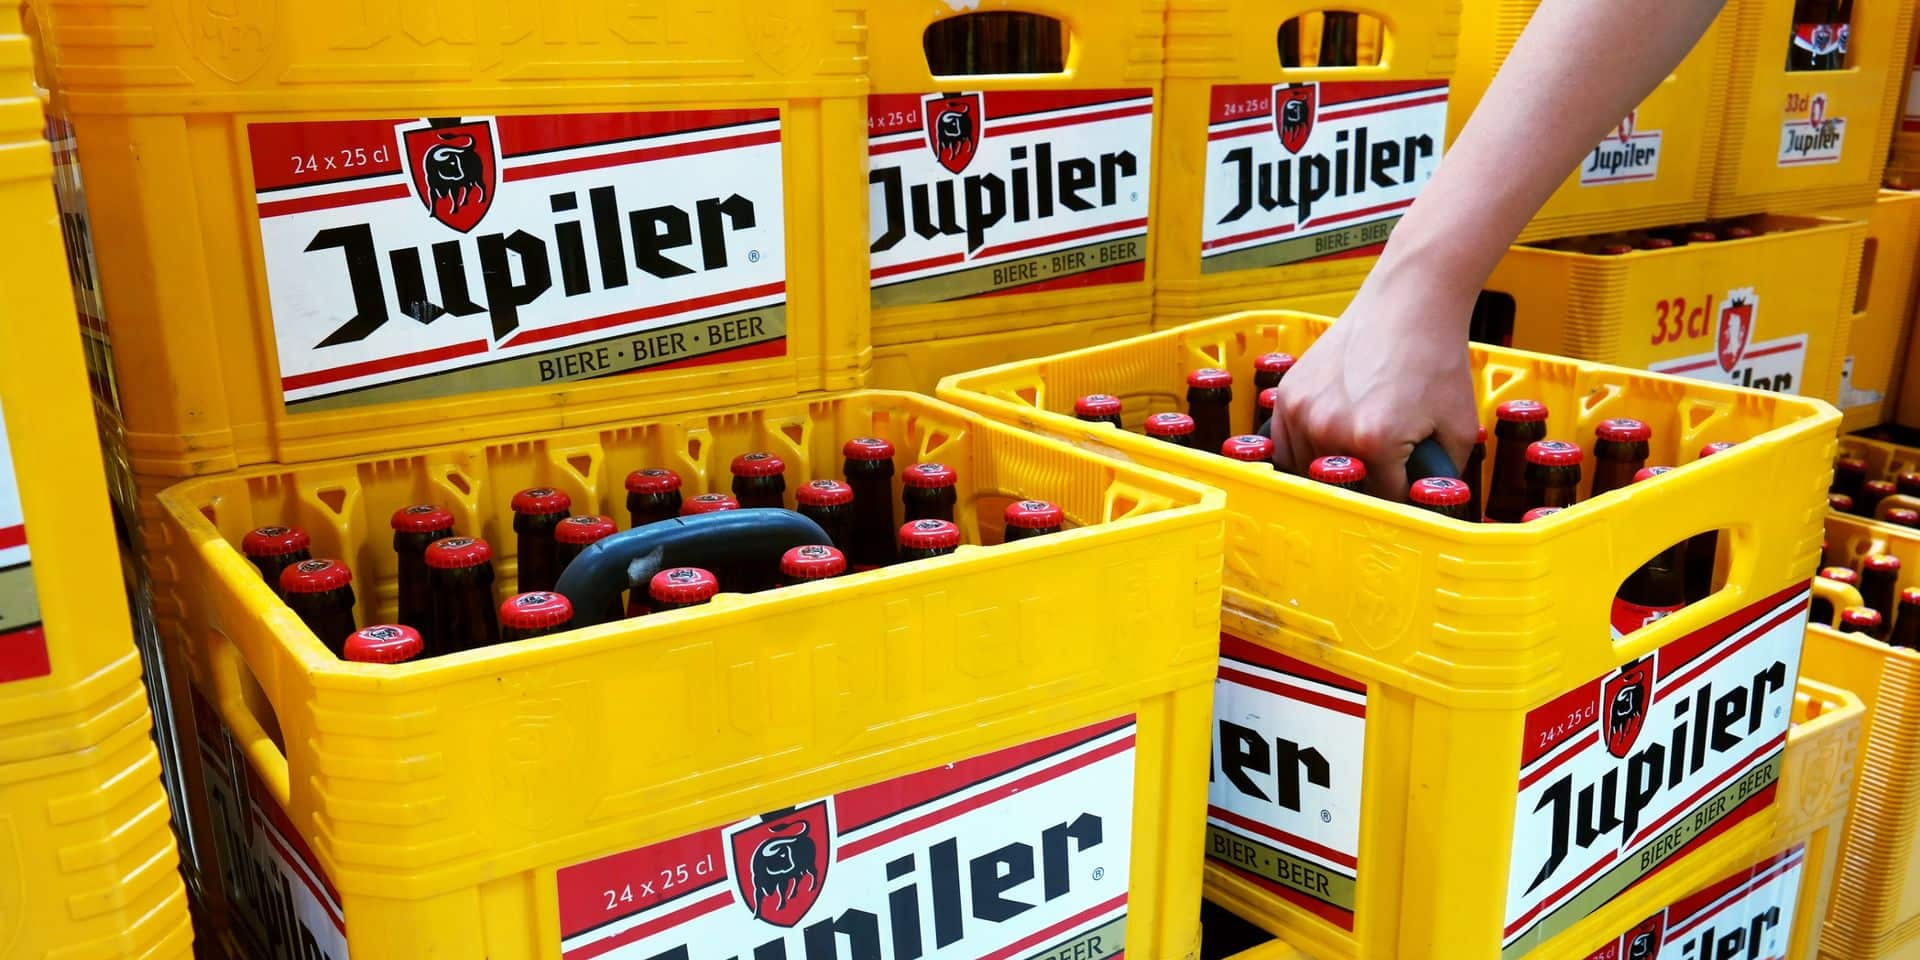 Offensive marketing sans précédent de Jupiler